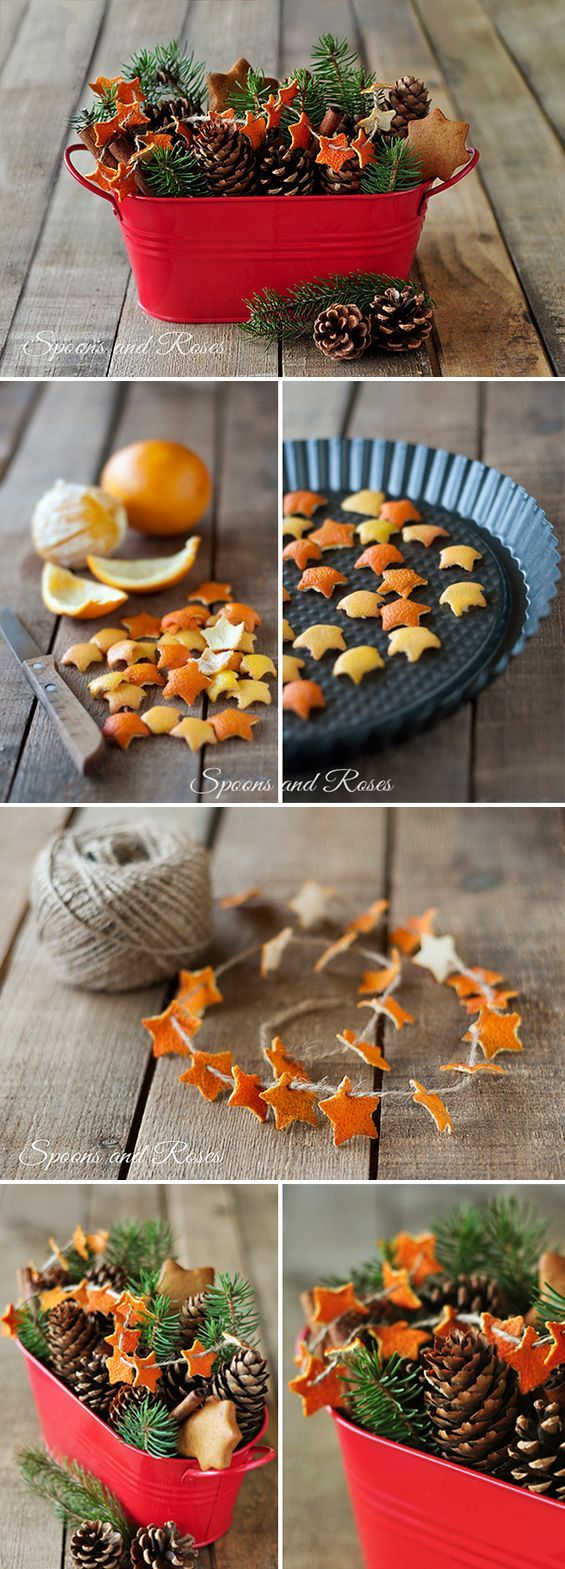 Orange Peel Garland for a Centerpiece